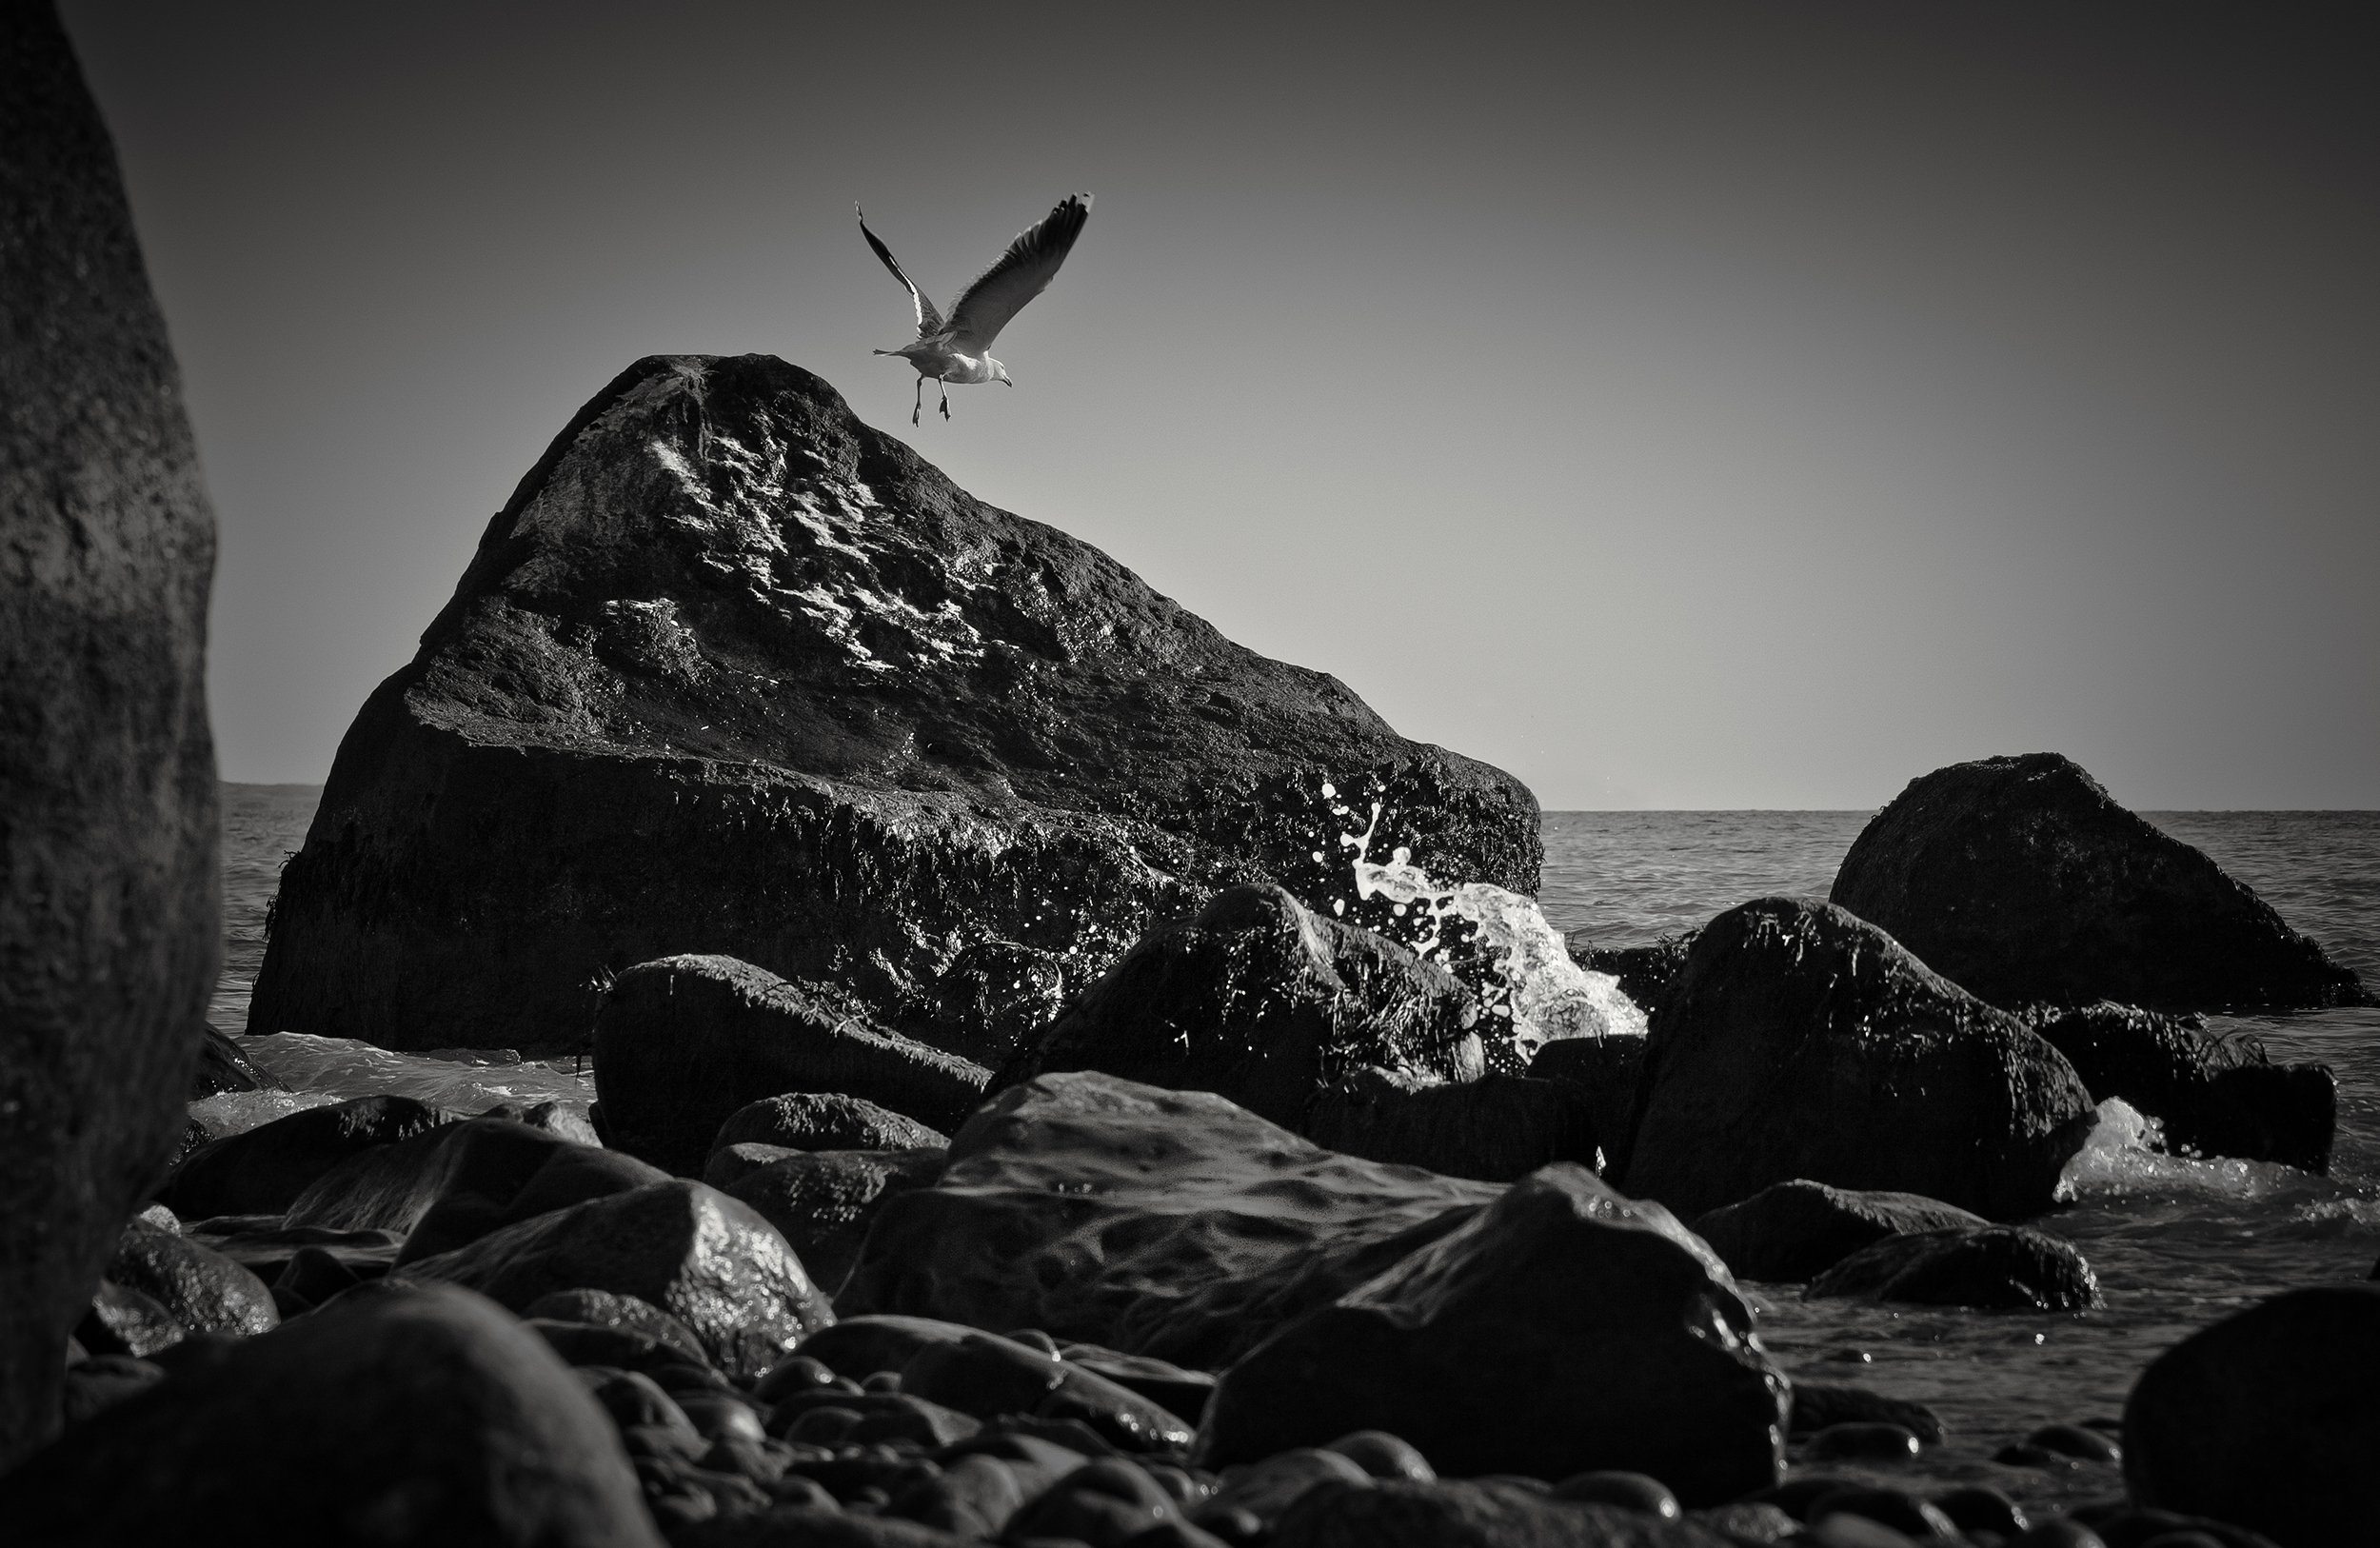 Seagull_Flying_Off_Rock_Img_2417.jpg